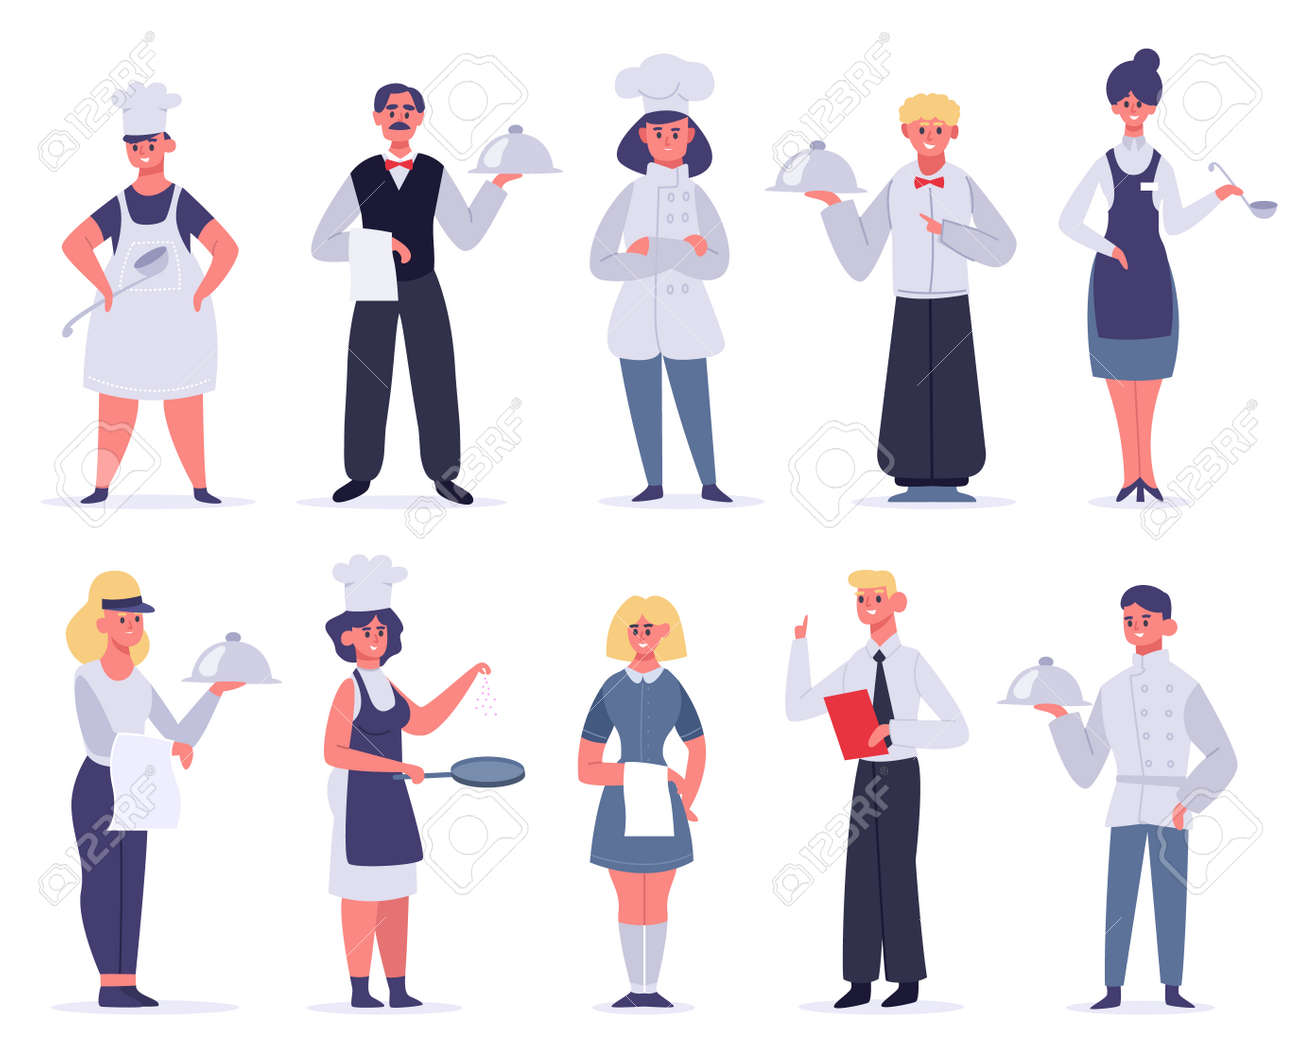 Kitchen workers. Restaurant staff characters, chef, assistants, hostess and waiter, kitchen workers cooking and serving, vector illustration set. Female and male employees in uniform - 158544464